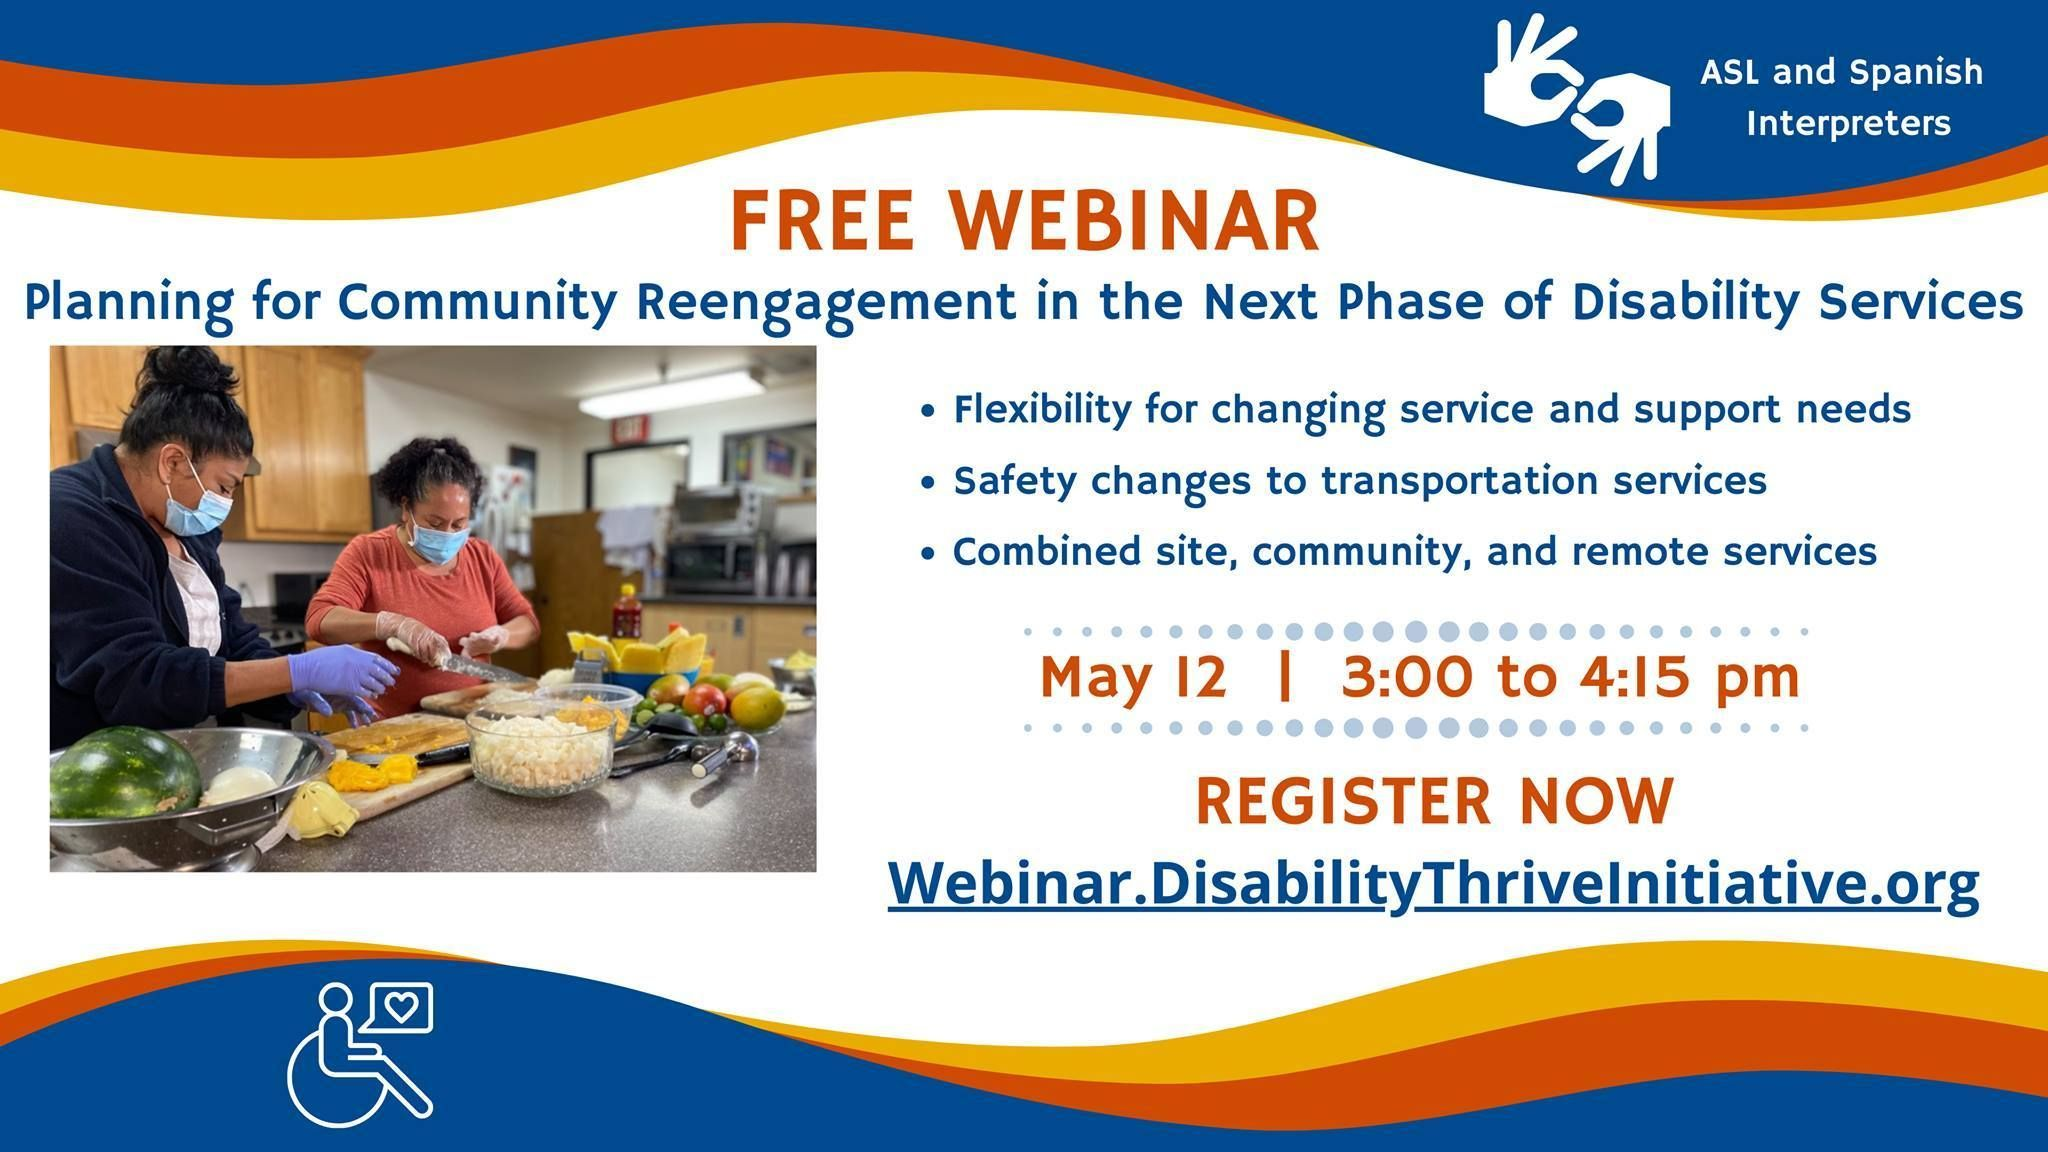 Topic Planning for Community Reengagement in the Next Phase of Disability Services